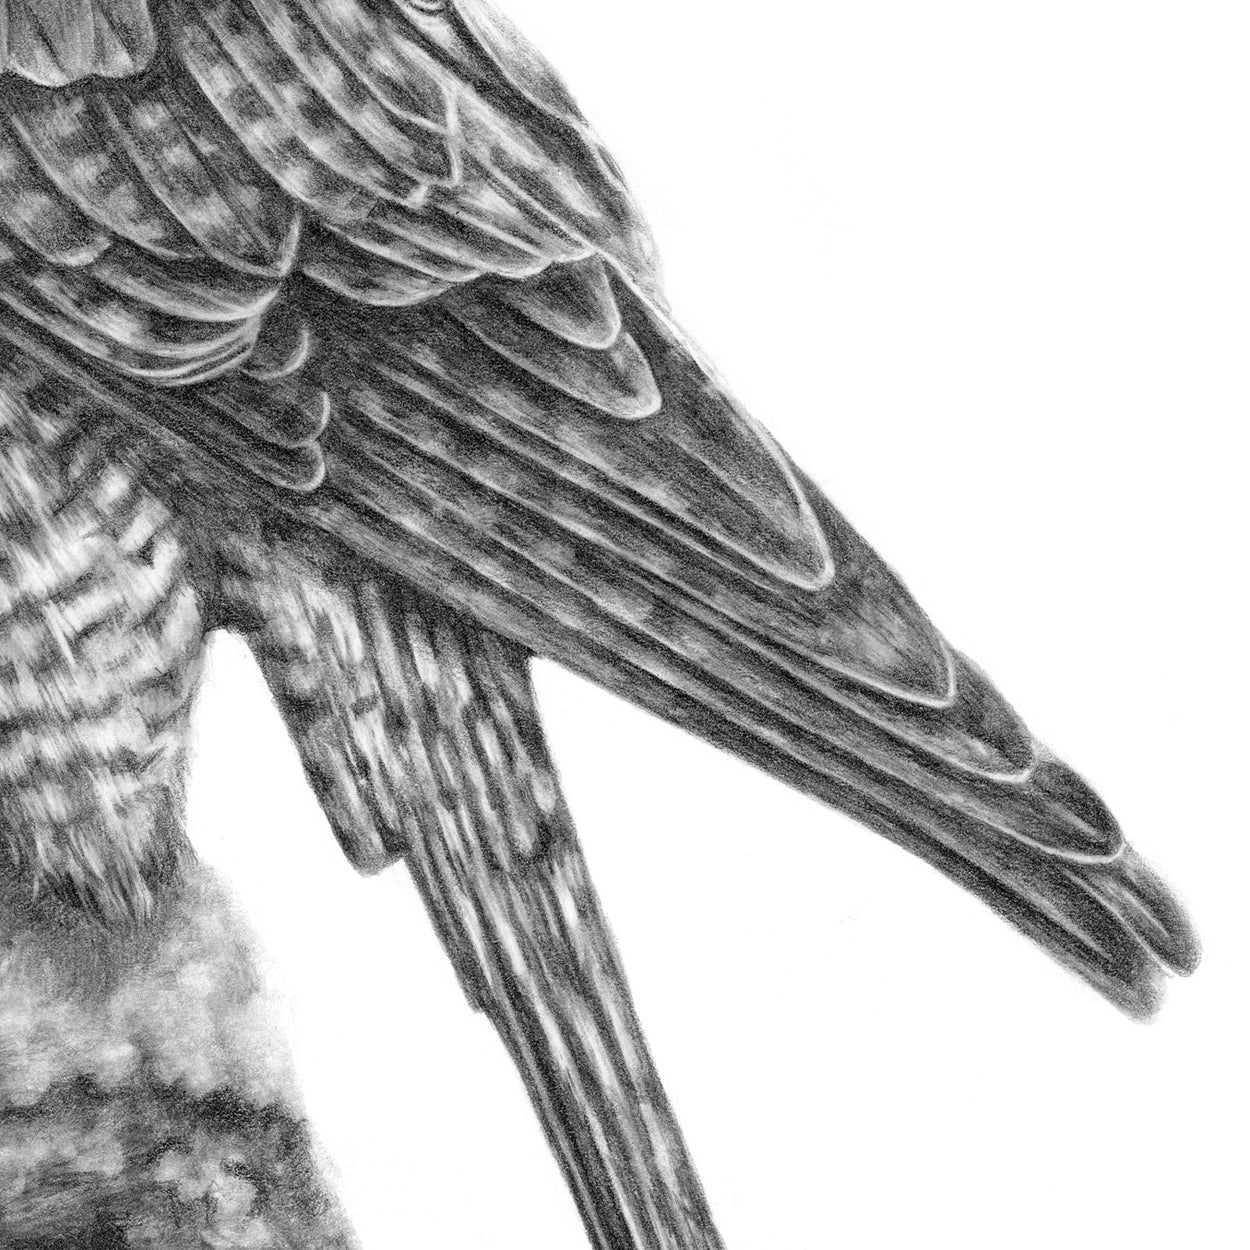 Peregrine Pencil Drawing Close-up 3 - The Thriving Wild - Jill Dimond